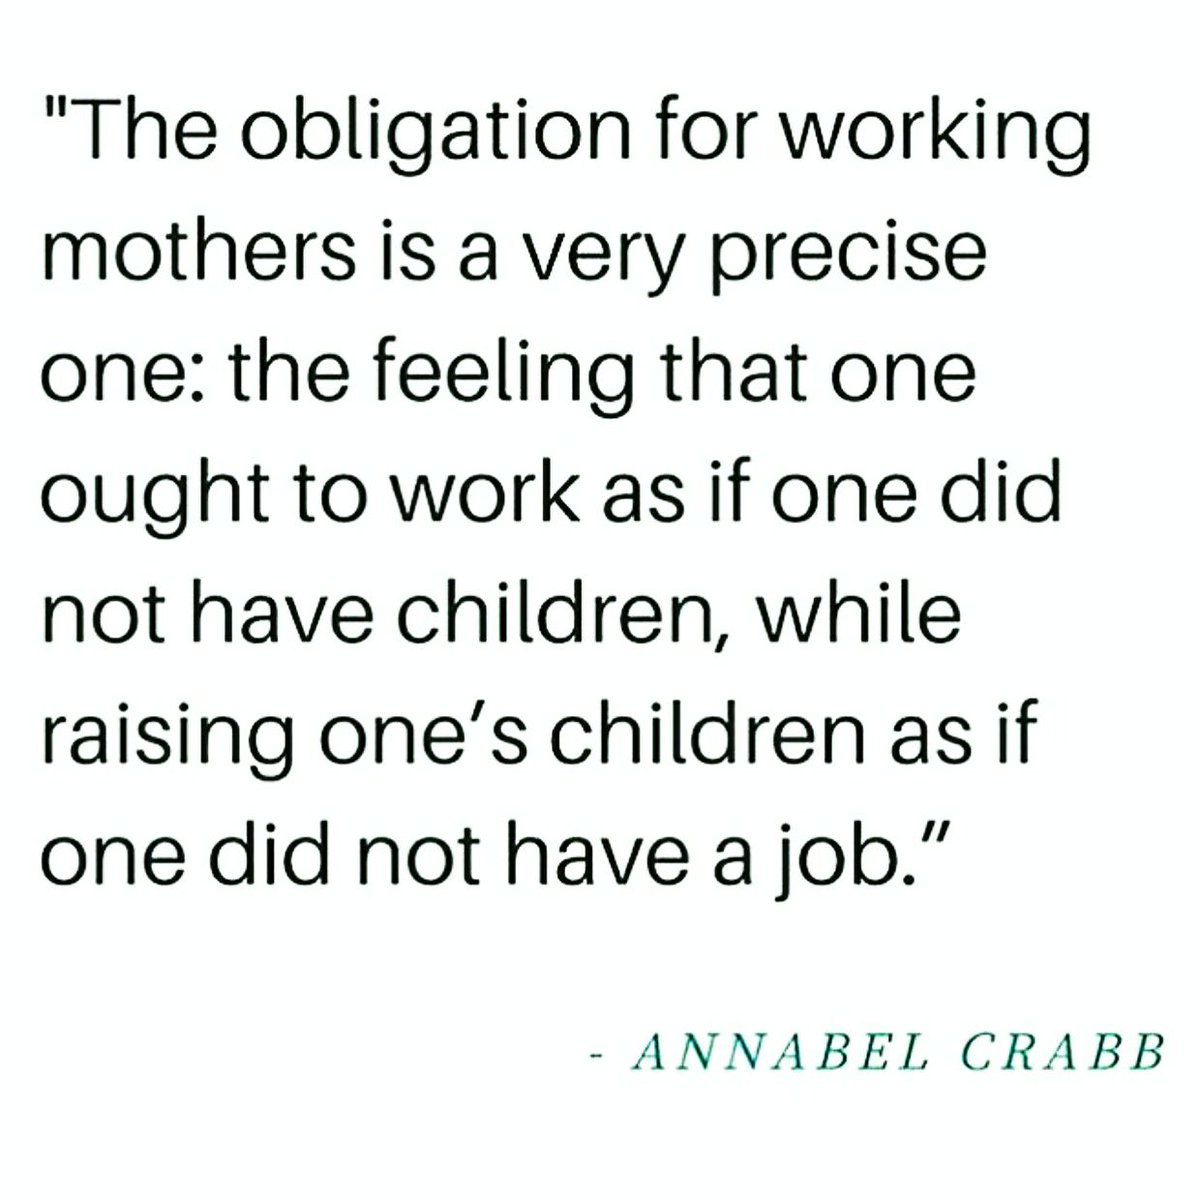 day week campaign on a day week will help 4 day week campaign on a 4 day week will help redistribute the unpaid and undervalued work done by women genderequity feministfriday motherhood